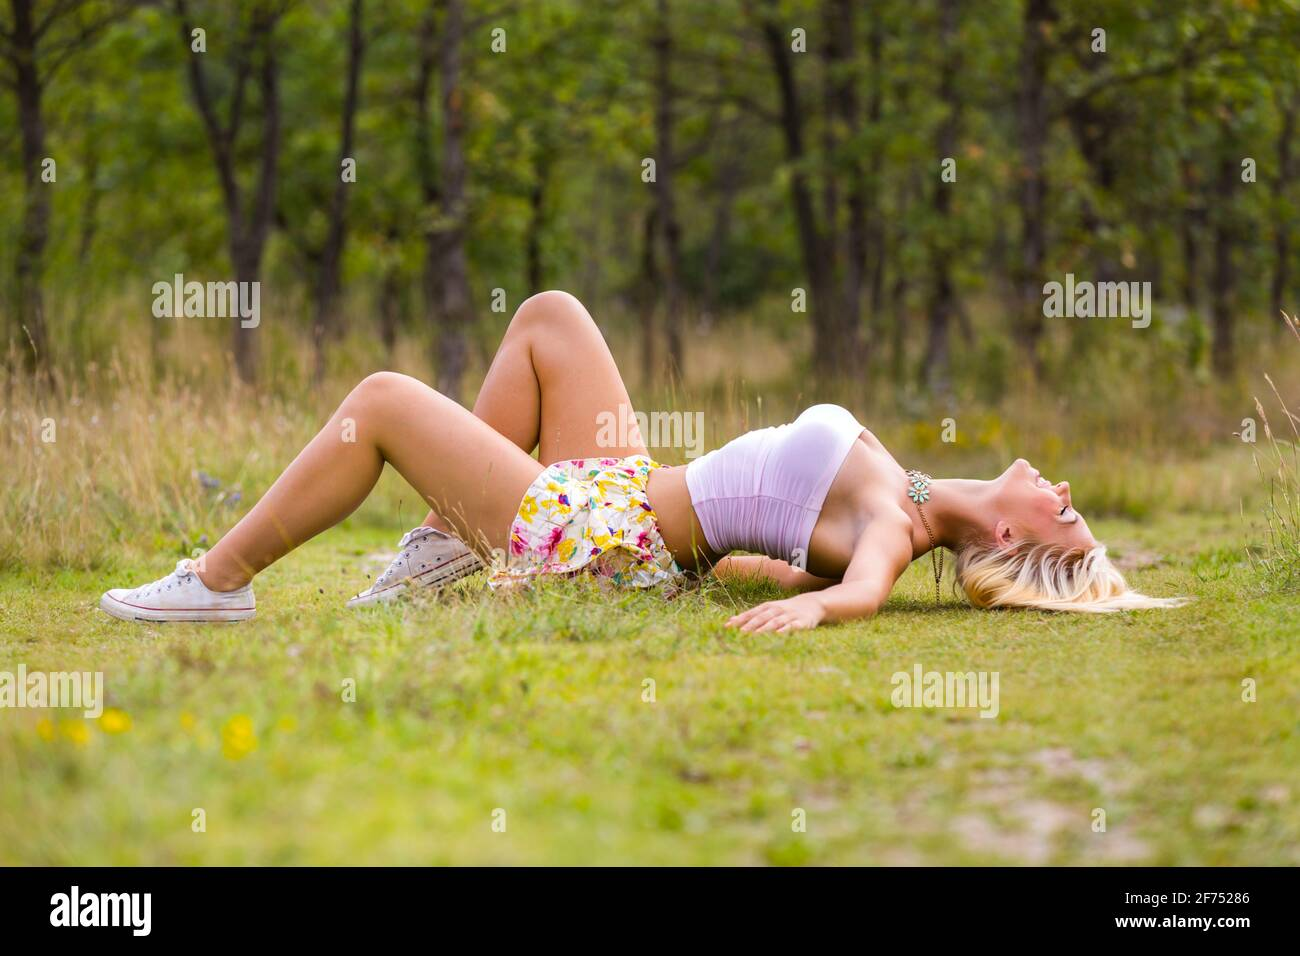 Teengirl Green nature forest trees natural environment countryside country countrygirl lying on her back stretching stretch overstretching tensioning Stock Photo